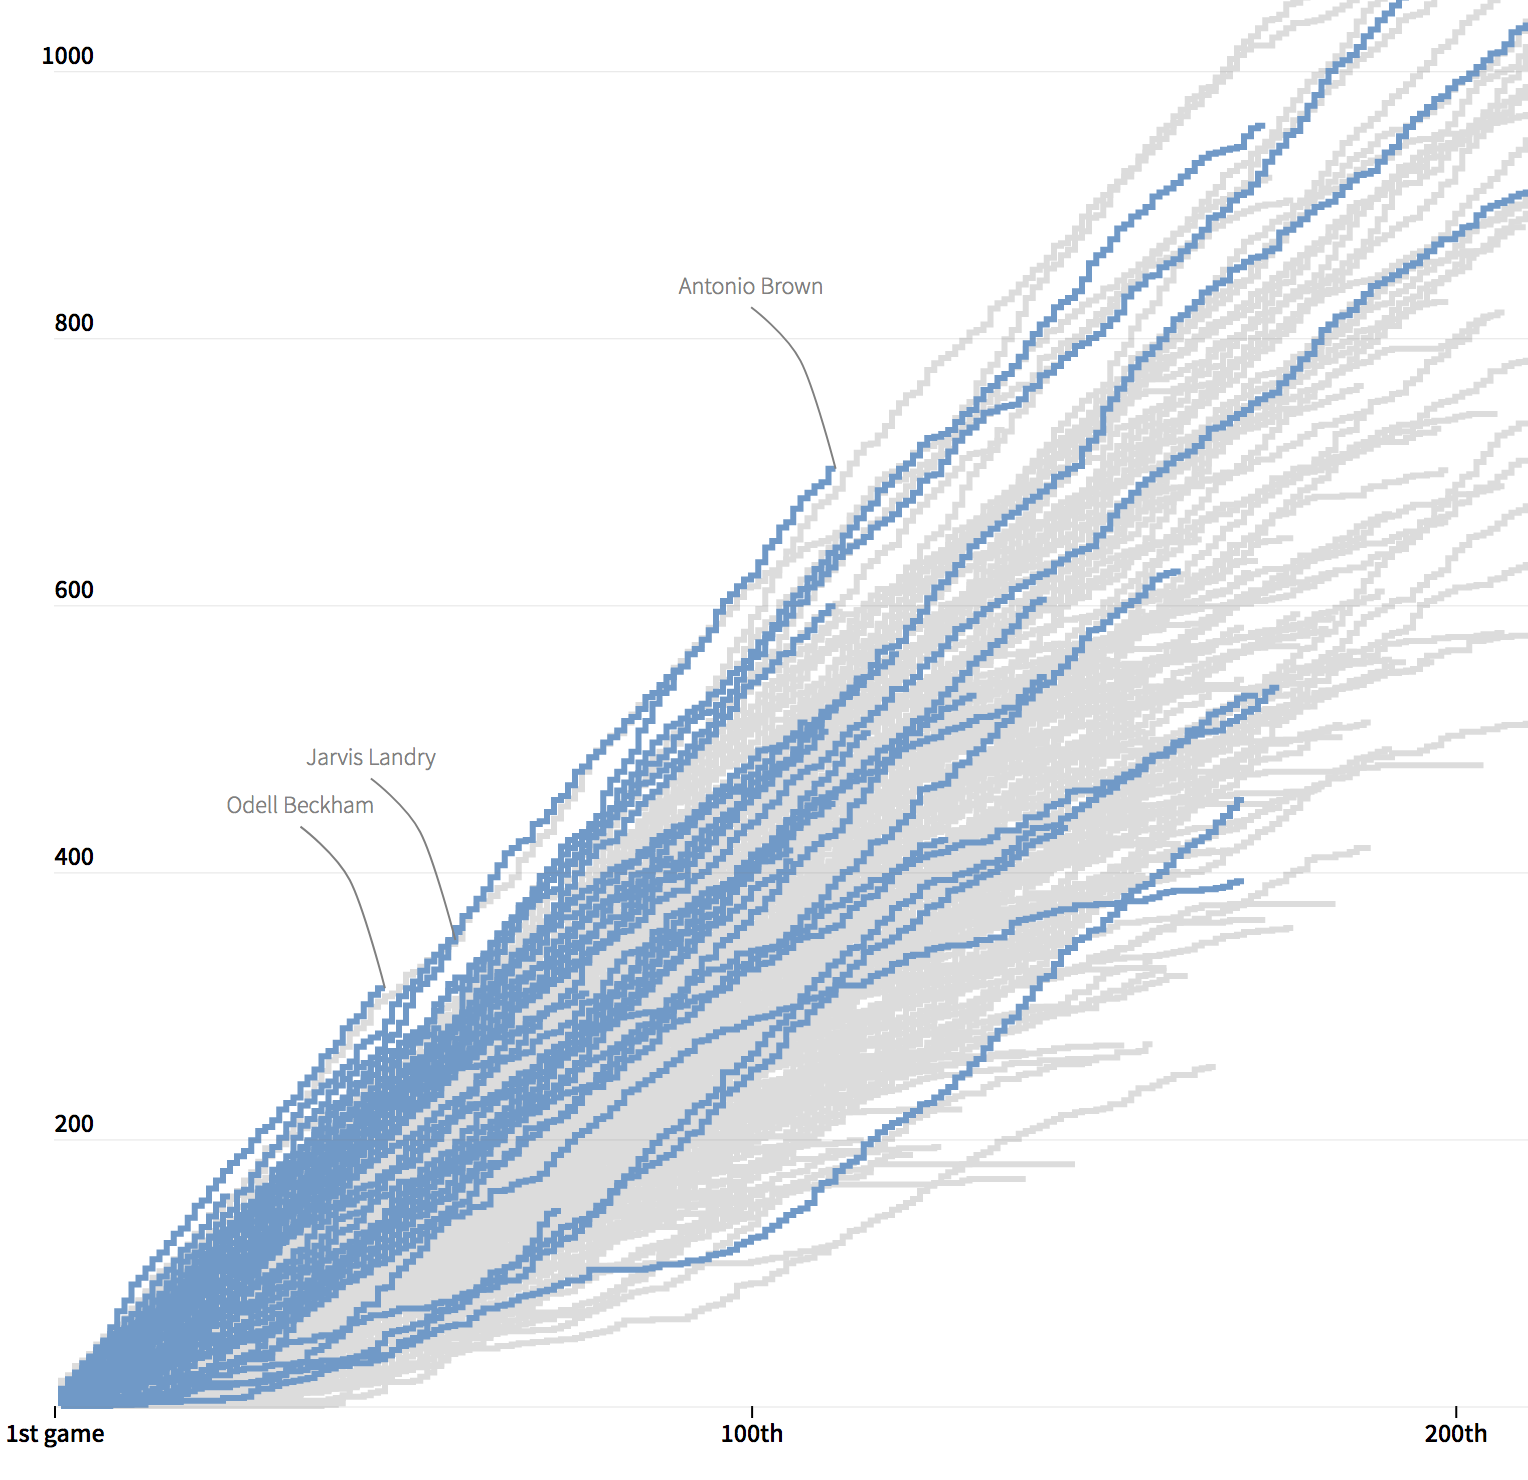 Charting the Careers of the NFL's Great Pass Catchers | The